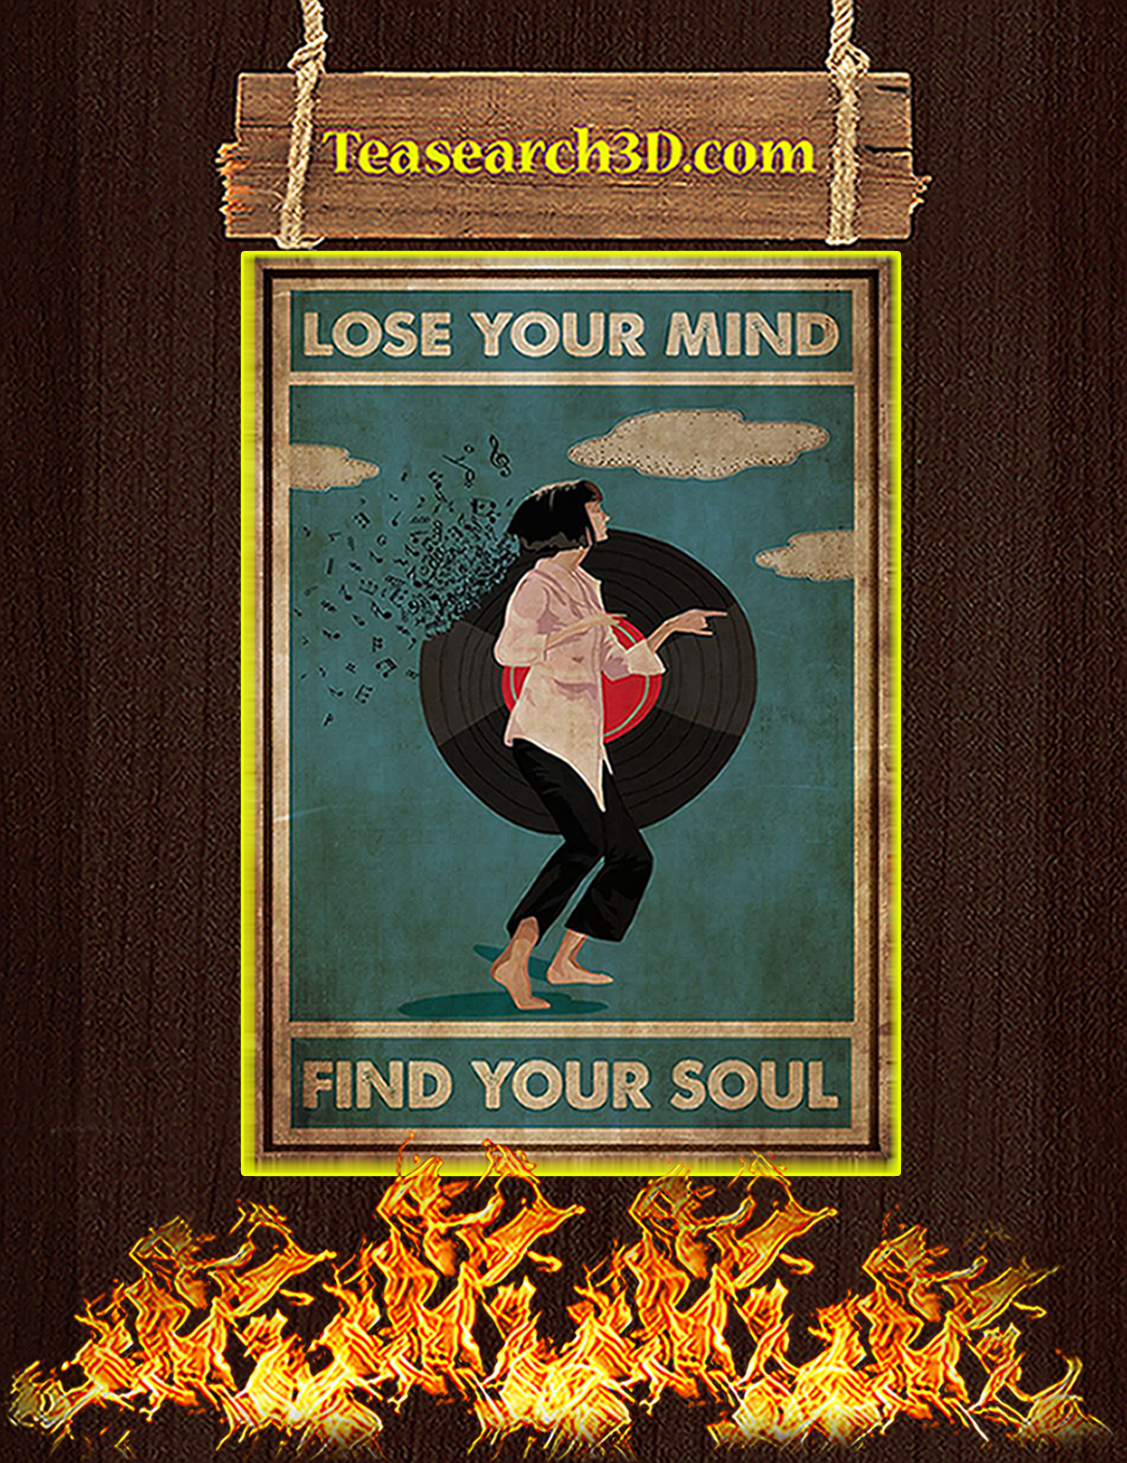 Mia wallace pulp fiction lose your mind find your soul poster A3